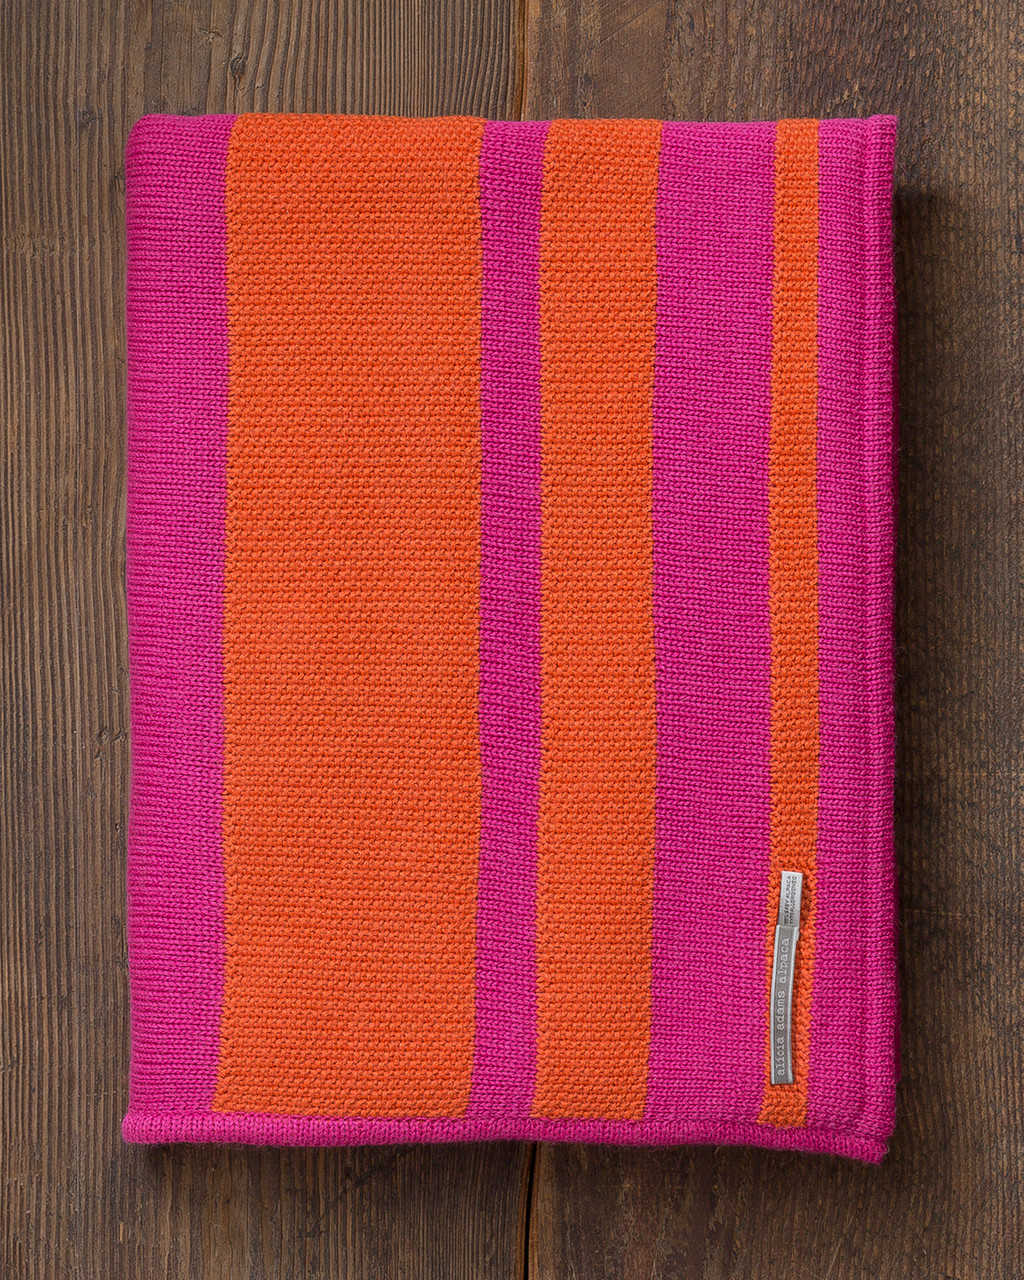 Alicia Adams Alpaca Malibu Throw, lightweight alpaca throw blanket, alpaca throw, alpaca vs cashmere, firecracker orange and shocking pink striped alpaca throw